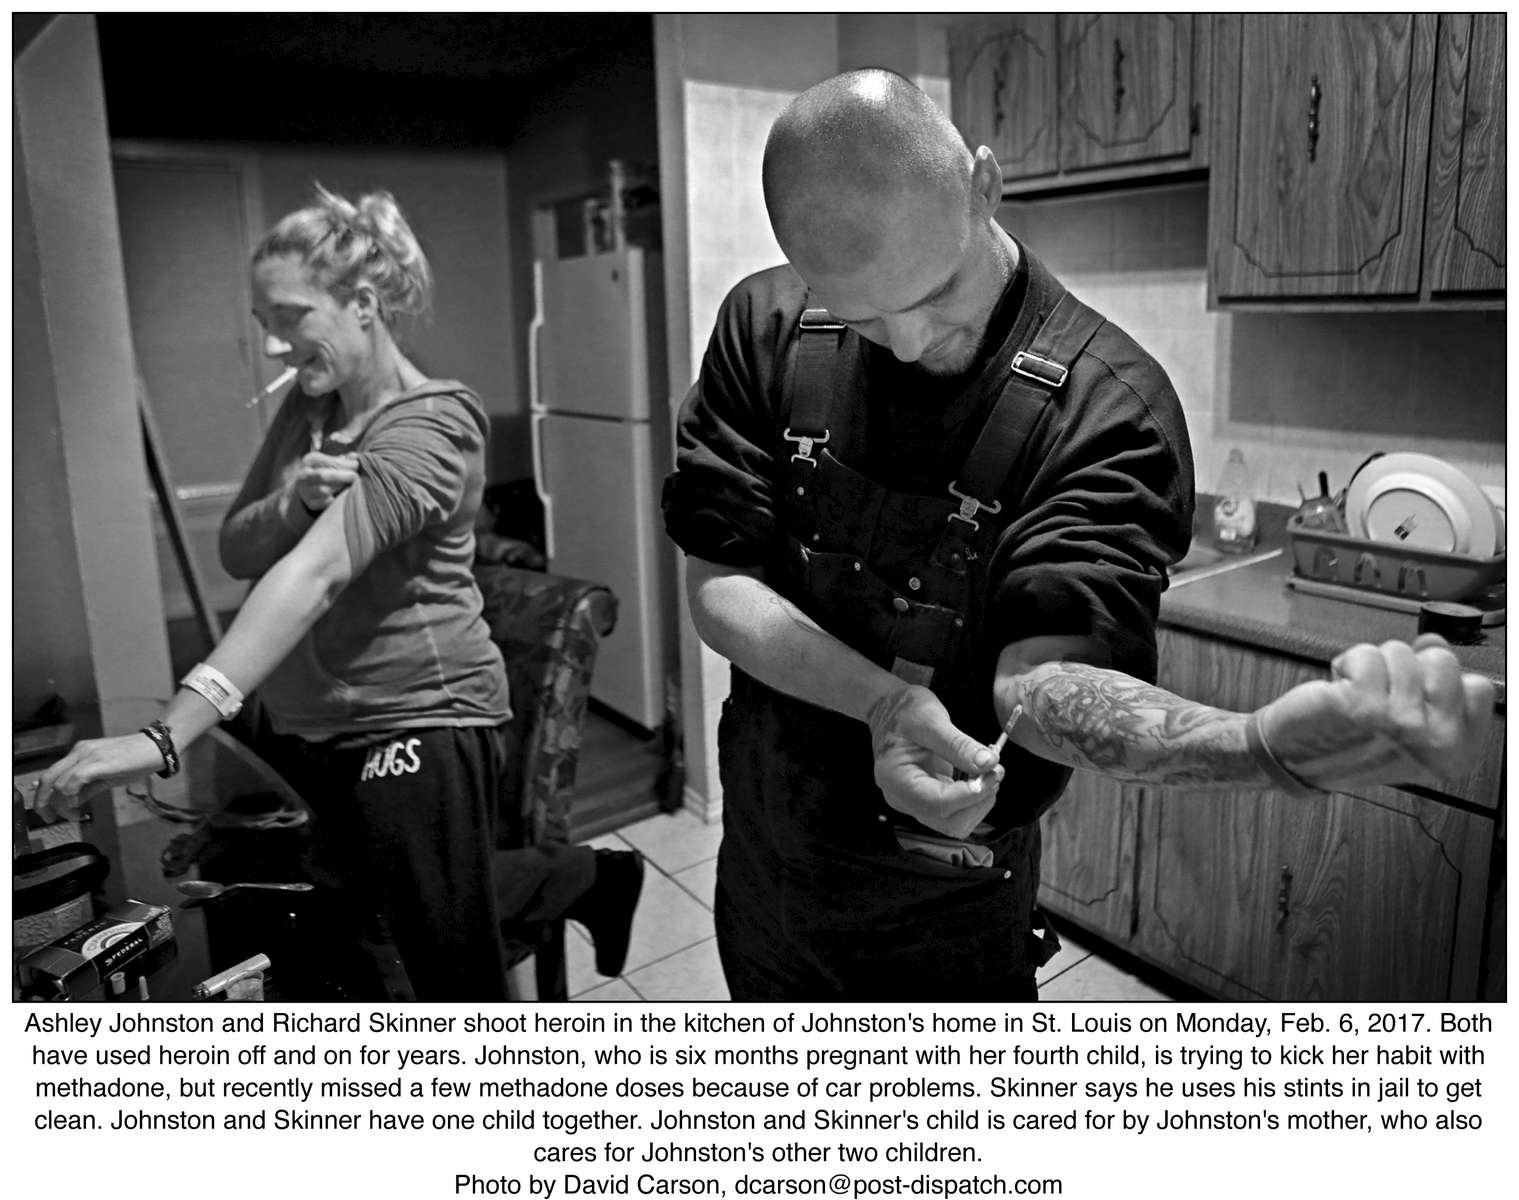 Ashley Johnston and Richard Skinner shoot heroin in the kitchen of Johnston's home in St. Louis on Monday, Feb. 6, 2017. Both have used heroin off and on for years. Johnston, who is six months pregnant with her fourth child, is trying to kick her habit with methadone, but recently missed a few methadone doses because of car problems. Skinner says he uses his stints in jail to get clean. Johnston and Skinner have one child together. Johnston and Skinner's child is cared for by Johnston's mother, who also cares for Johnston's other two children.Photo by David Carson, dcarson@post-dispatch.com